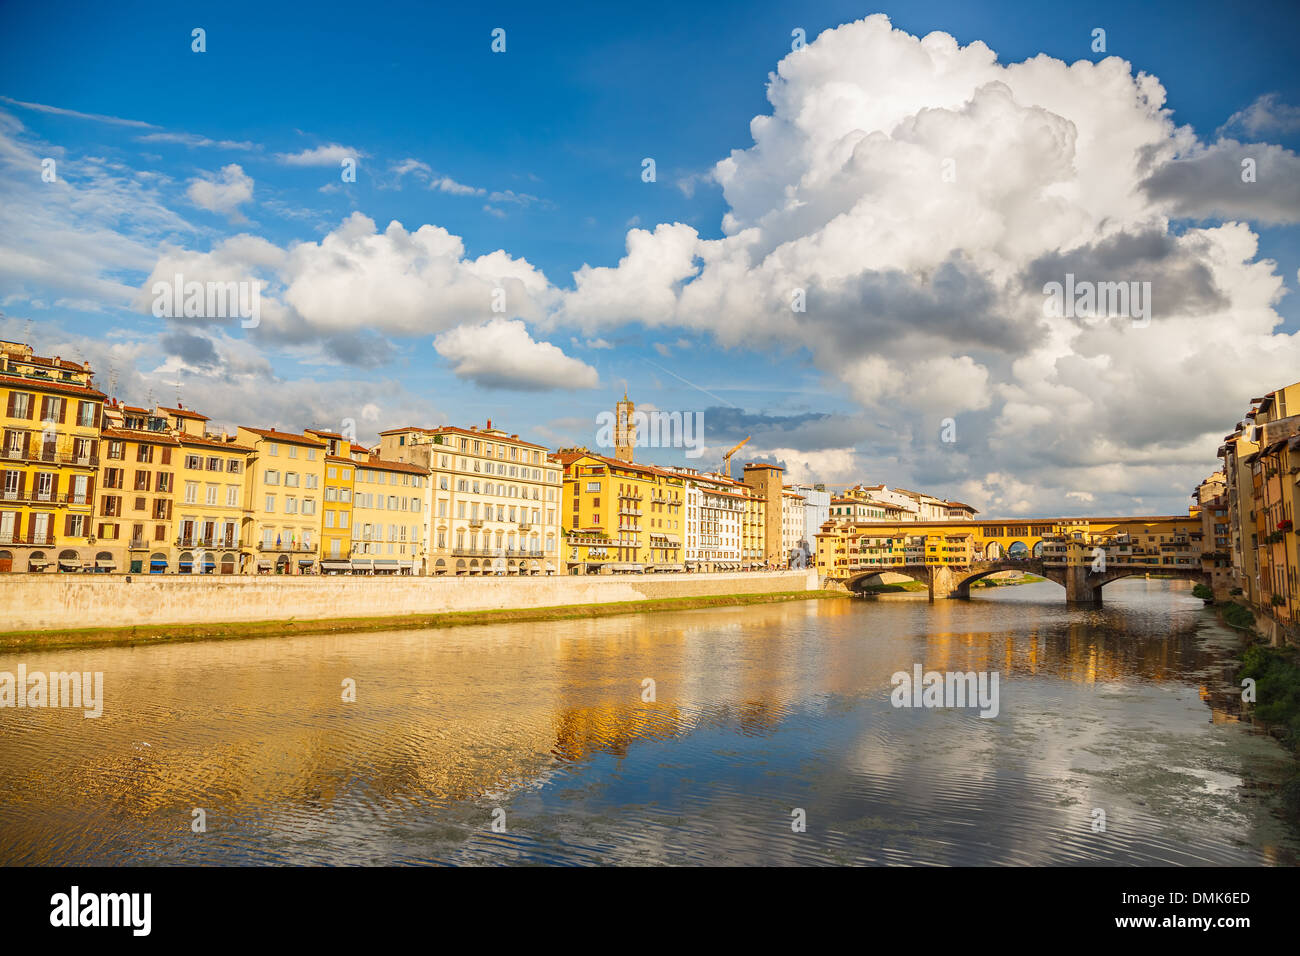 Arno river in Florence - Stock Image